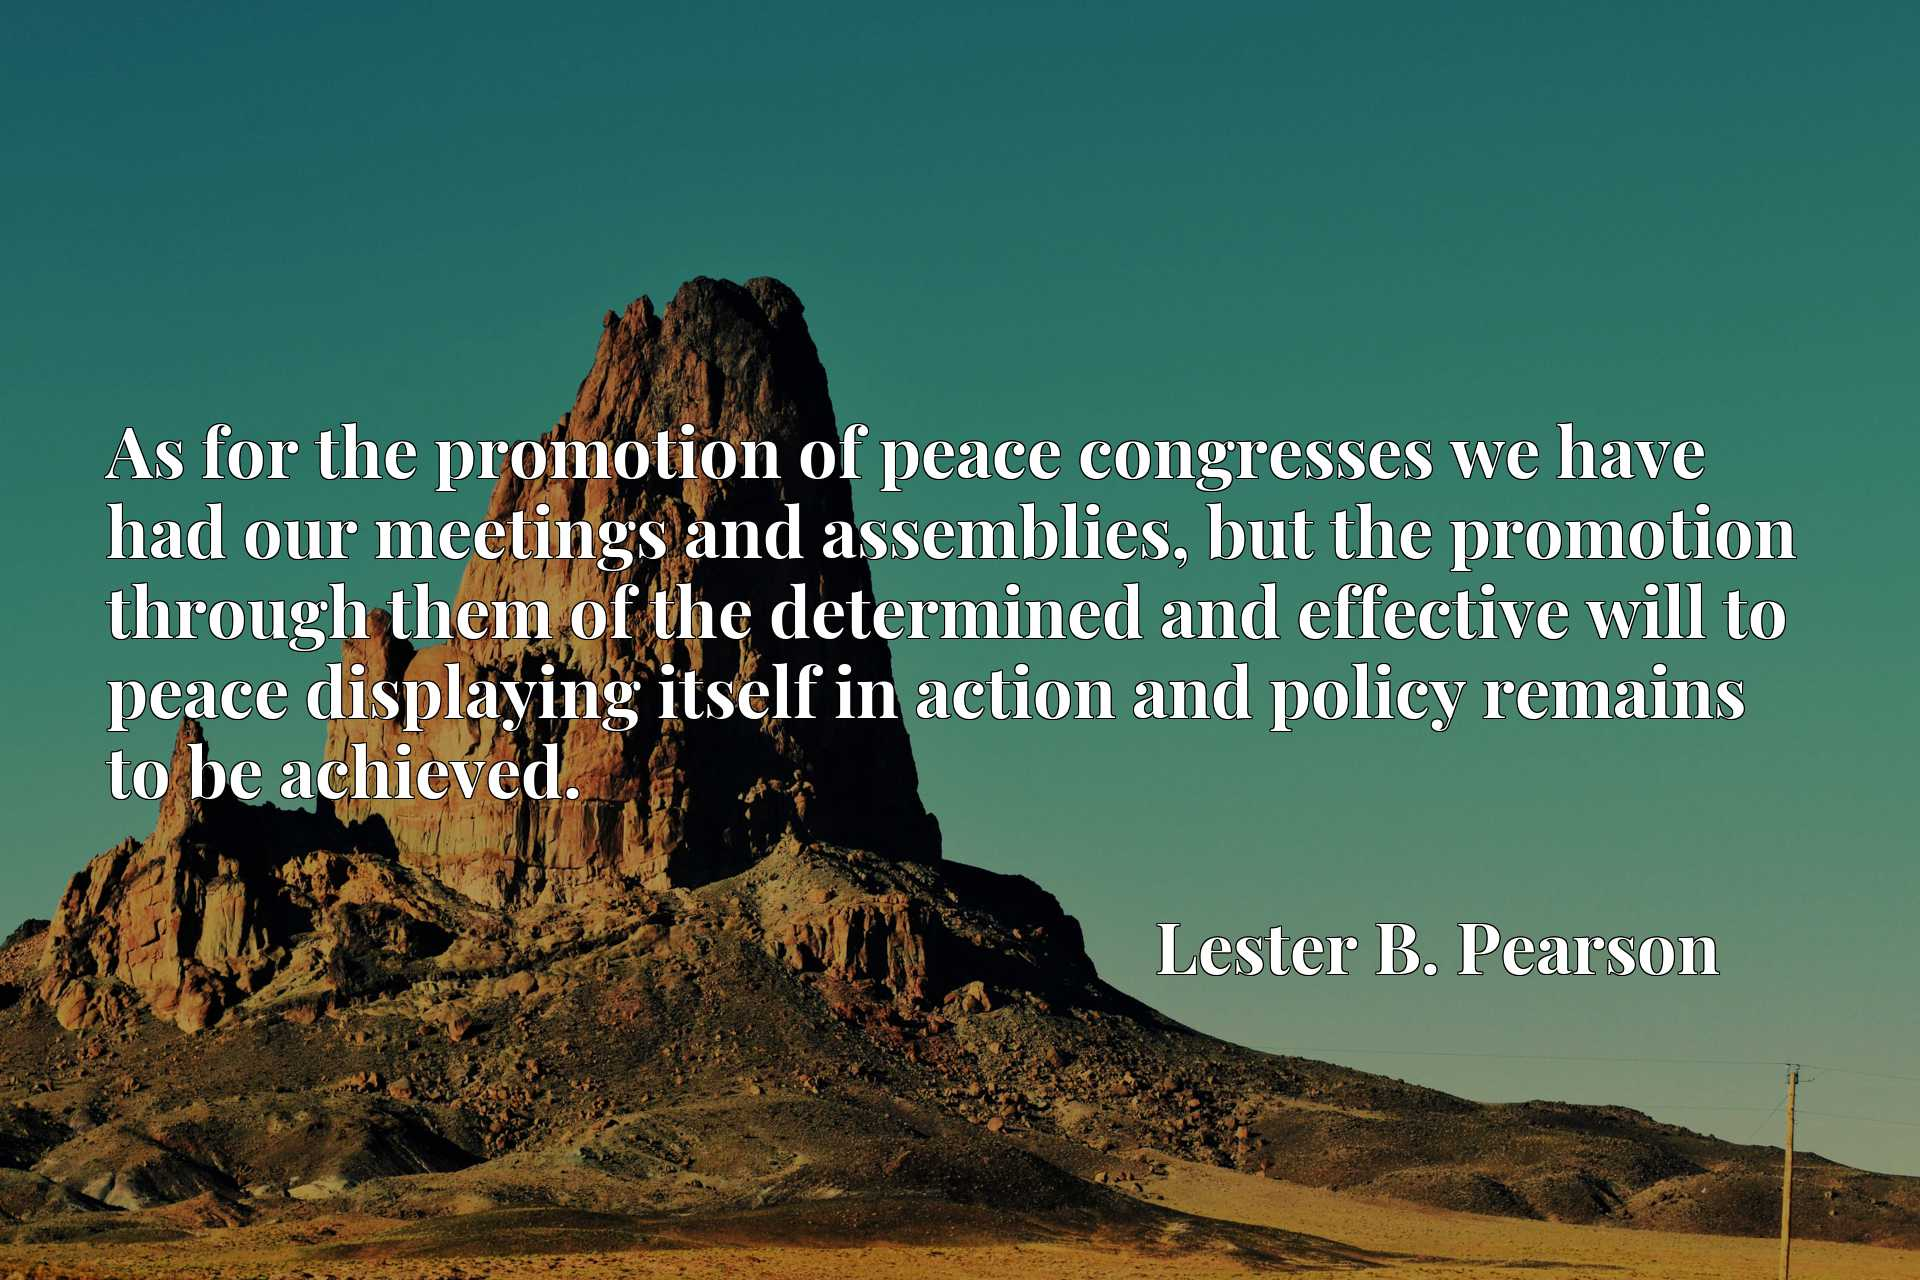 As for the promotion of peace congresses we have had our meetings and assemblies, but the promotion through them of the determined and effective will to peace displaying itself in action and policy remains to be achieved.